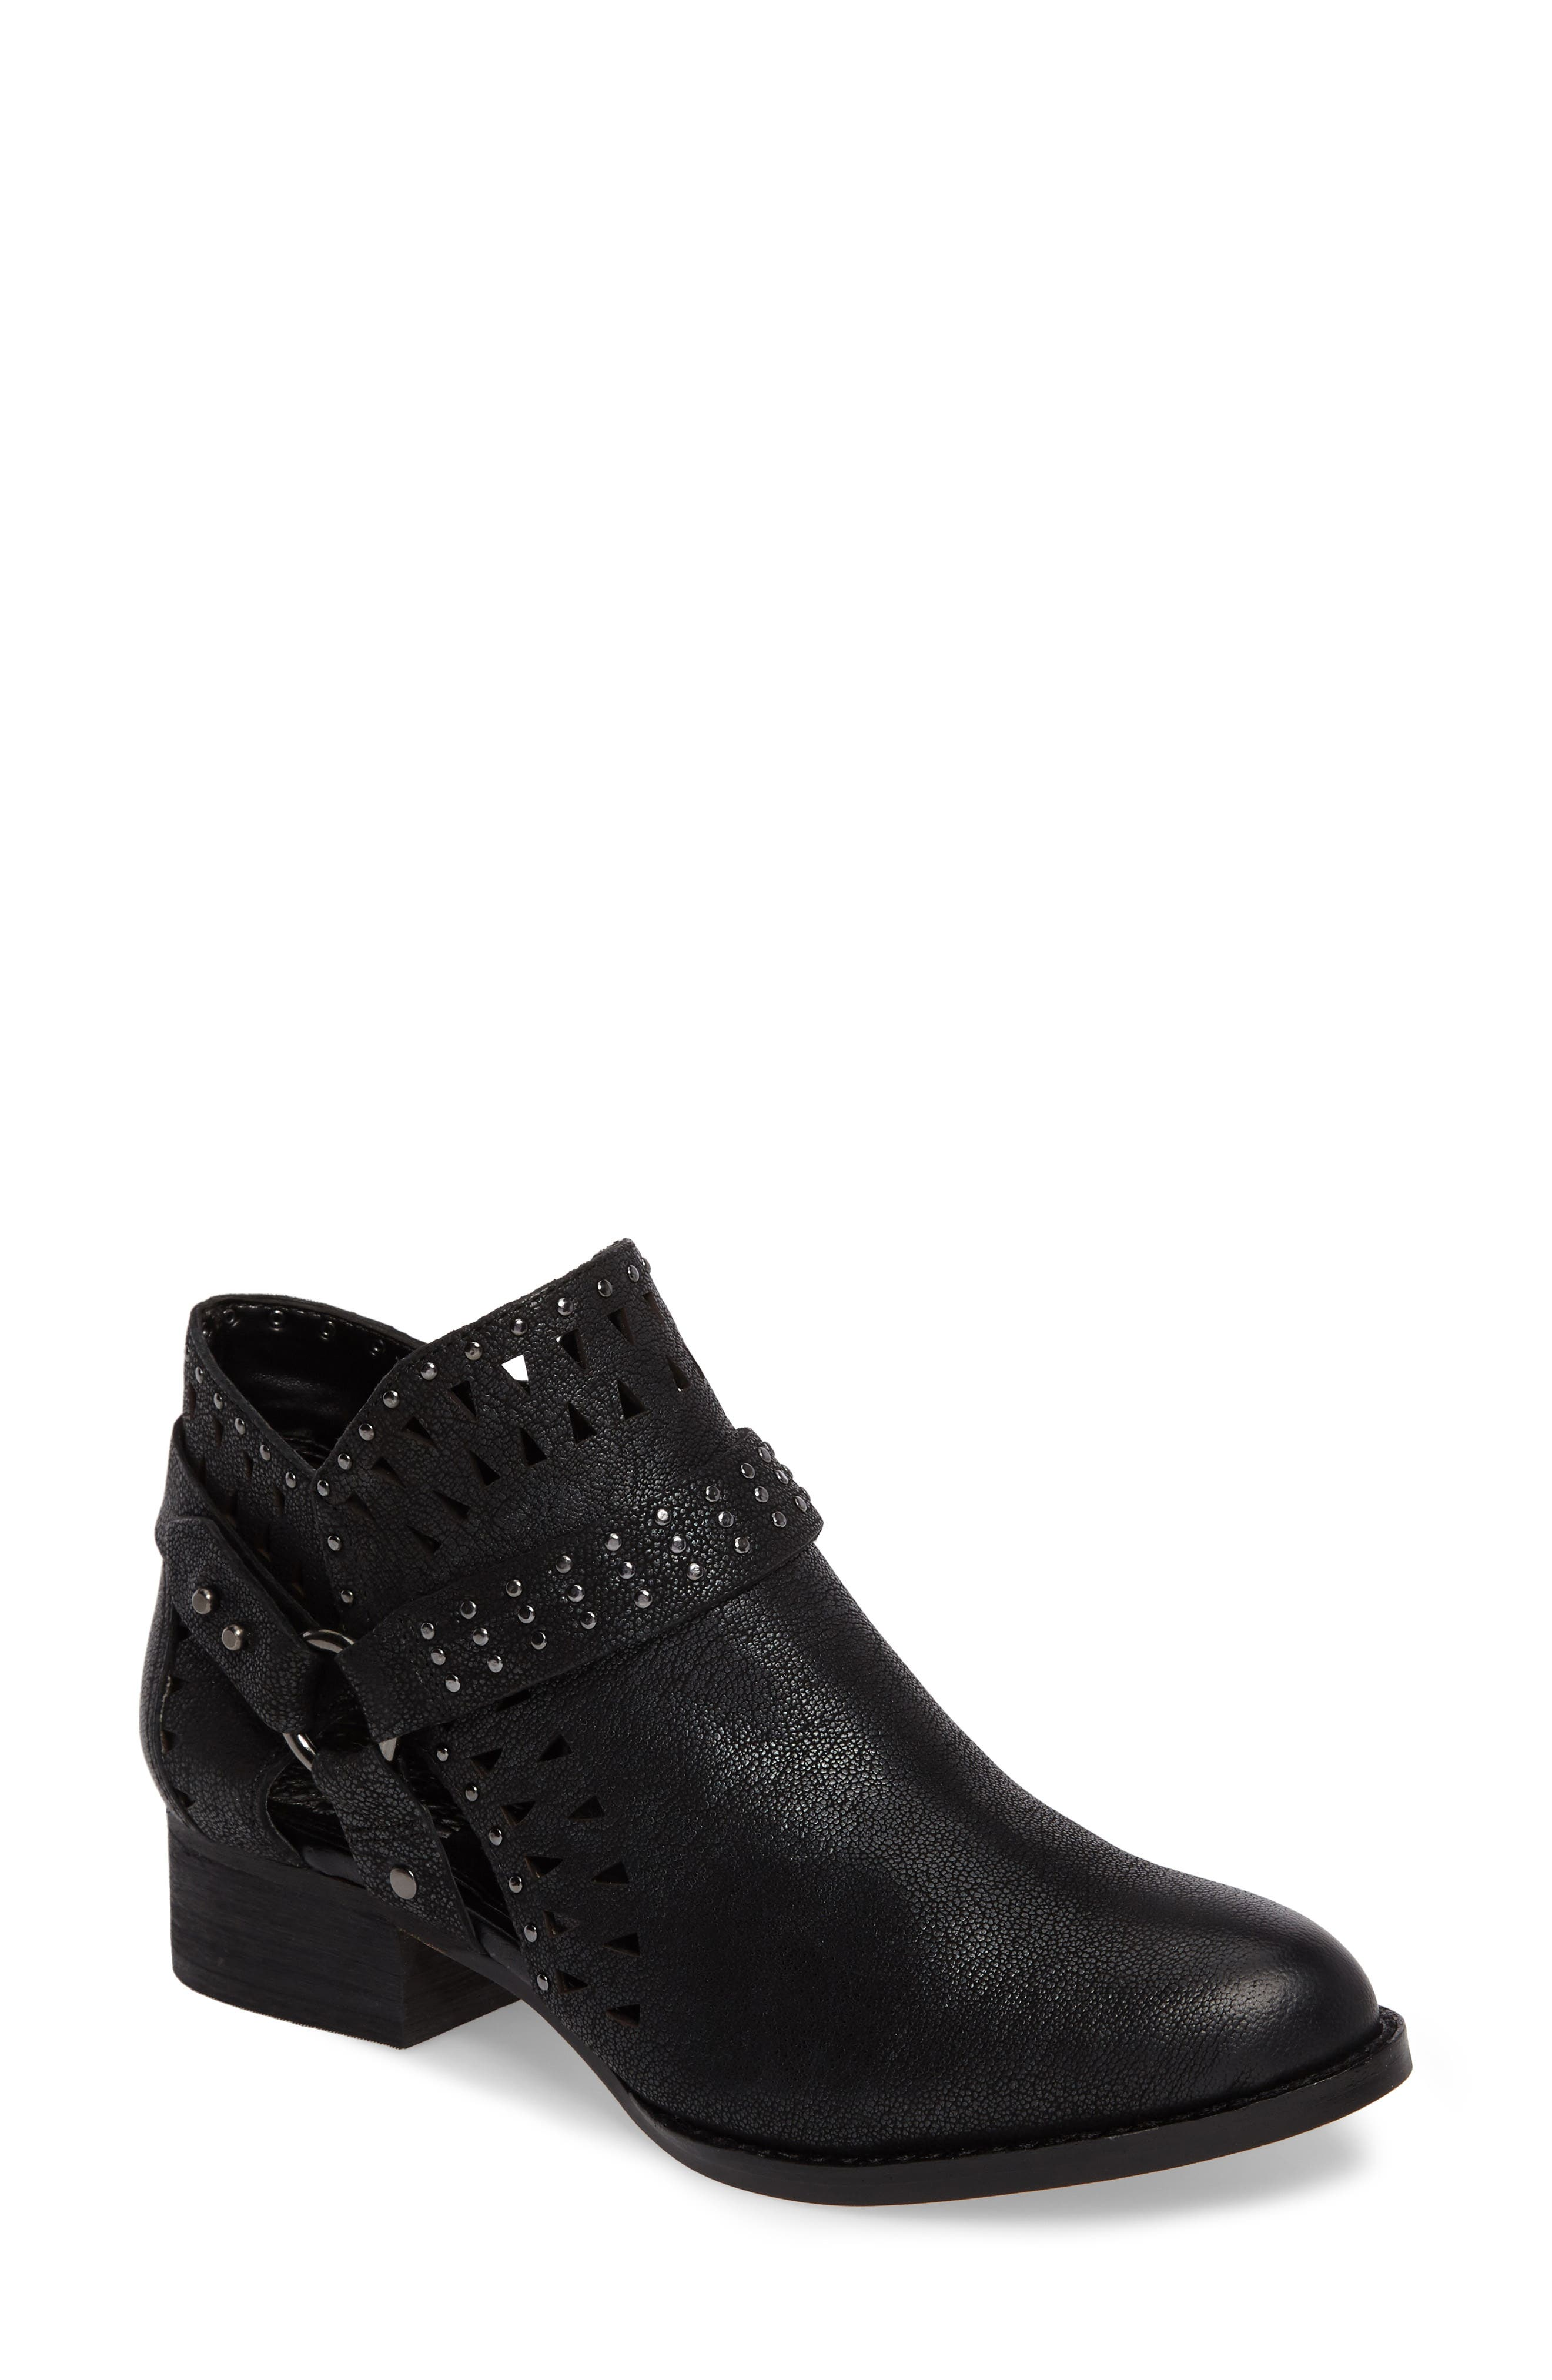 Calley Strappy Studded Bootie,                             Main thumbnail 1, color,                             001